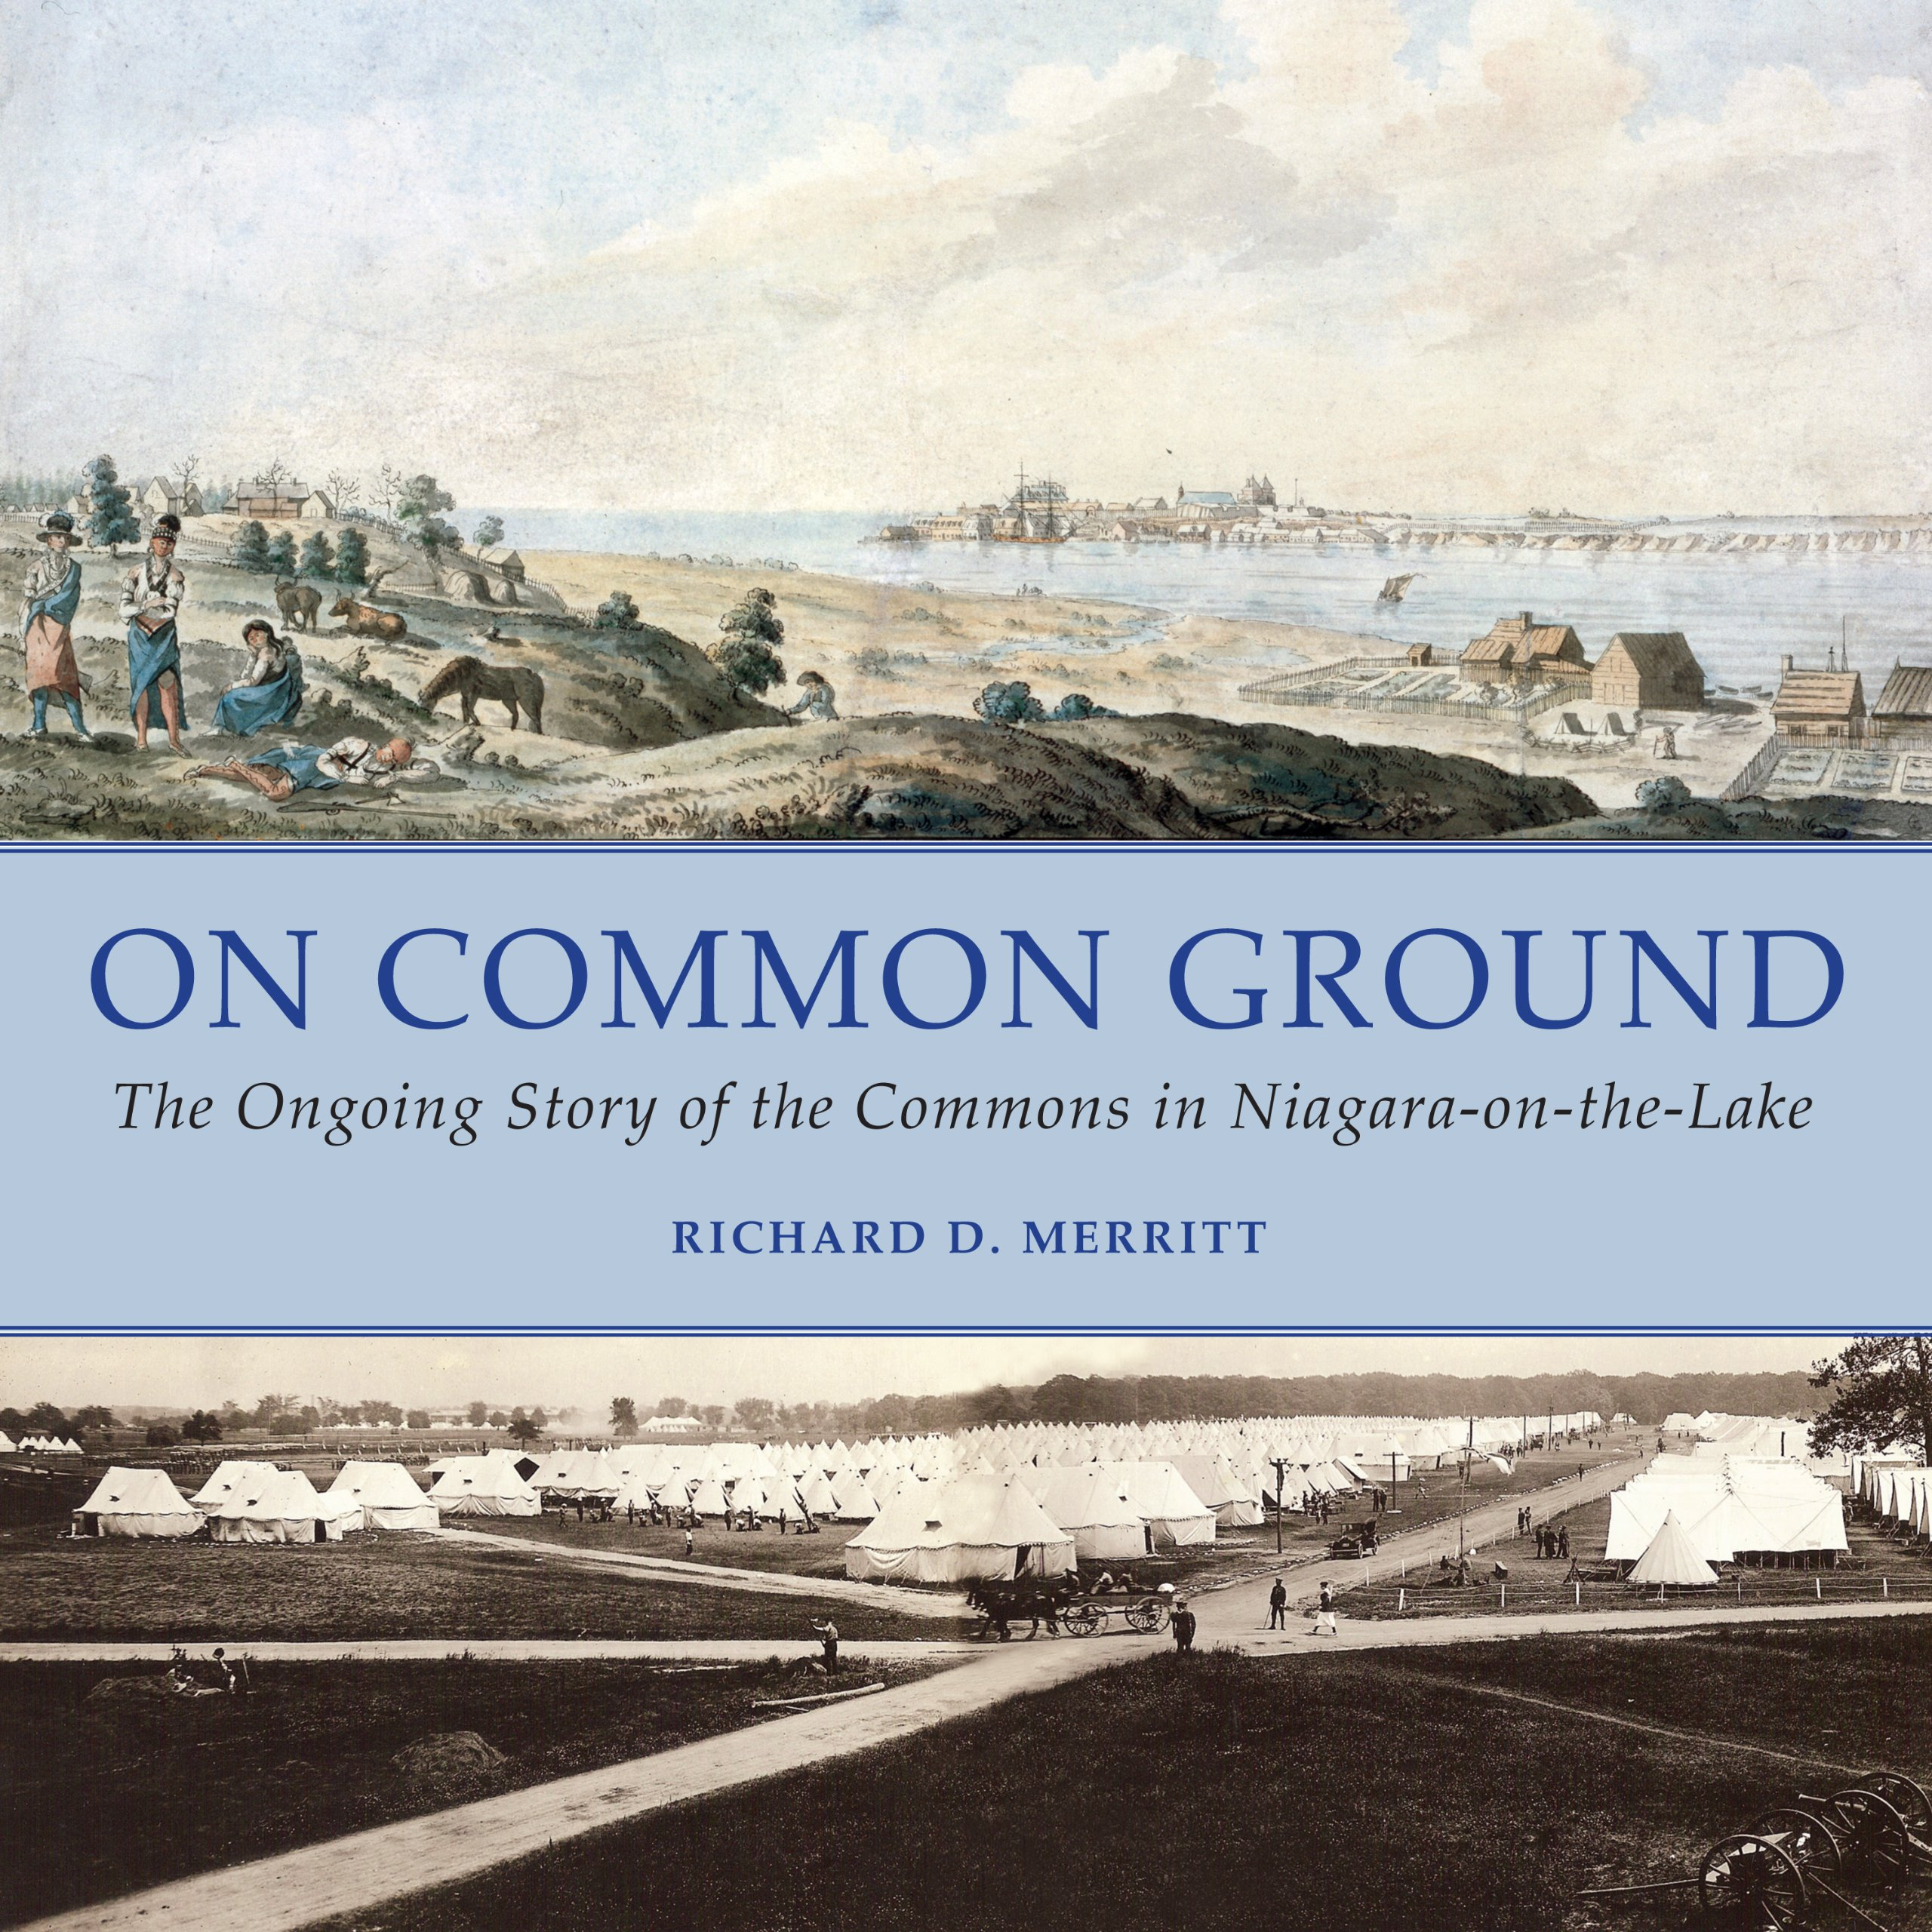 On Common Ground: The Ongoing Story of the